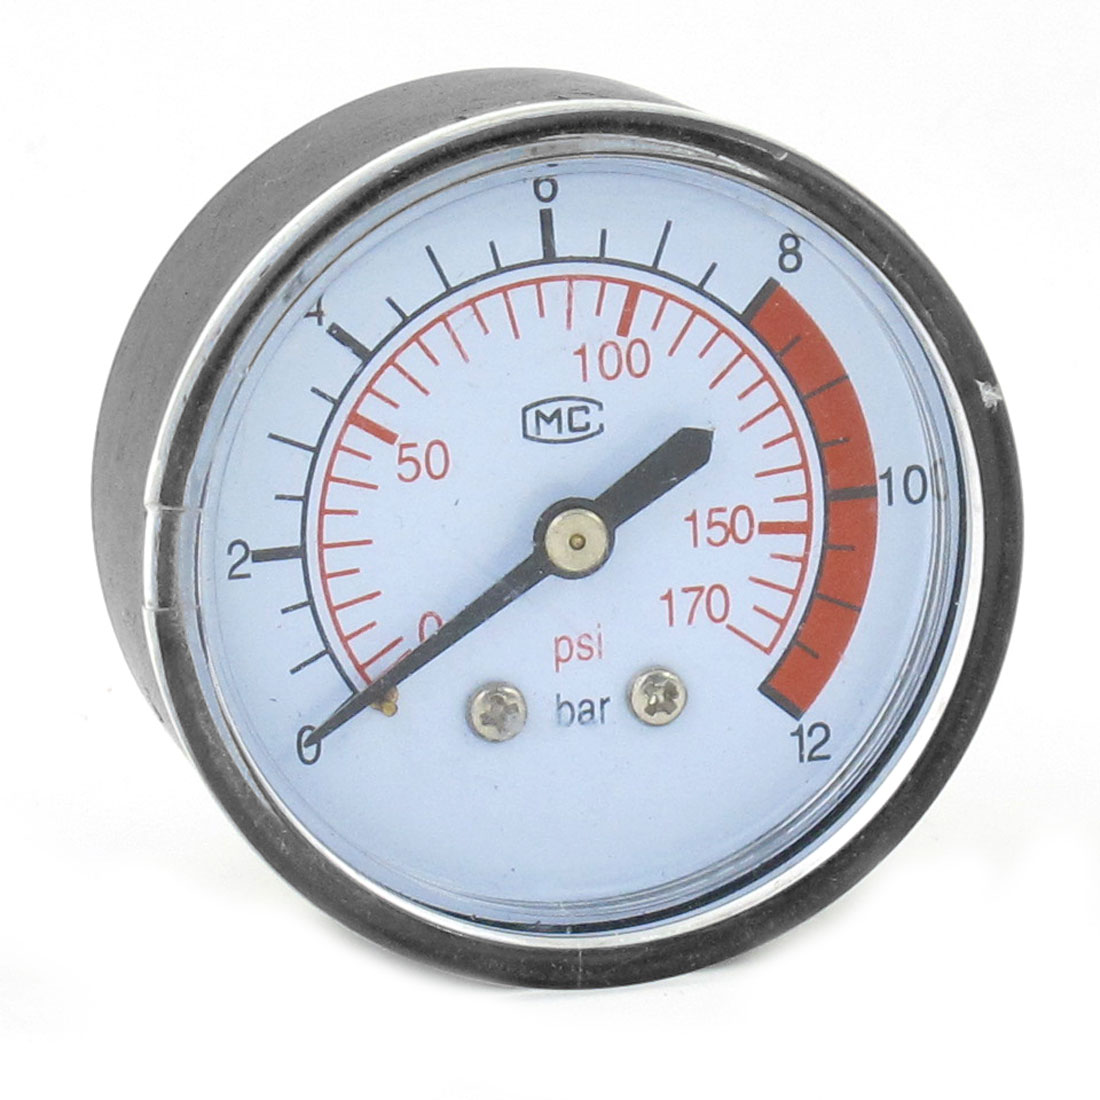 Hydrovane Air Pressure Compressor Gauge 0 - 170 PSI 0 - 12 Bar Tool